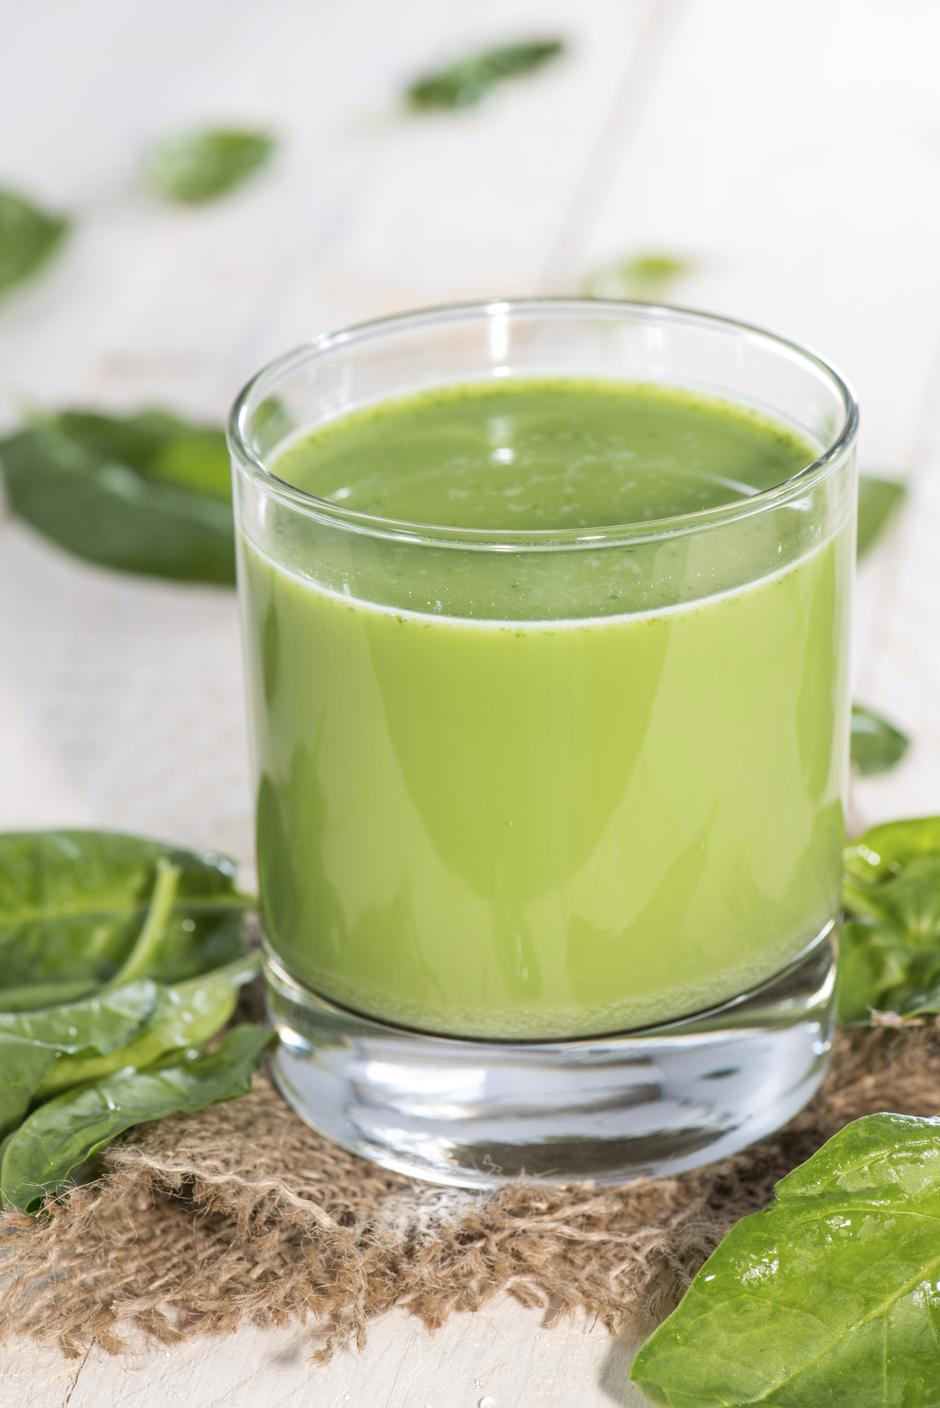 smoothie špinat | Author: Thinkstock